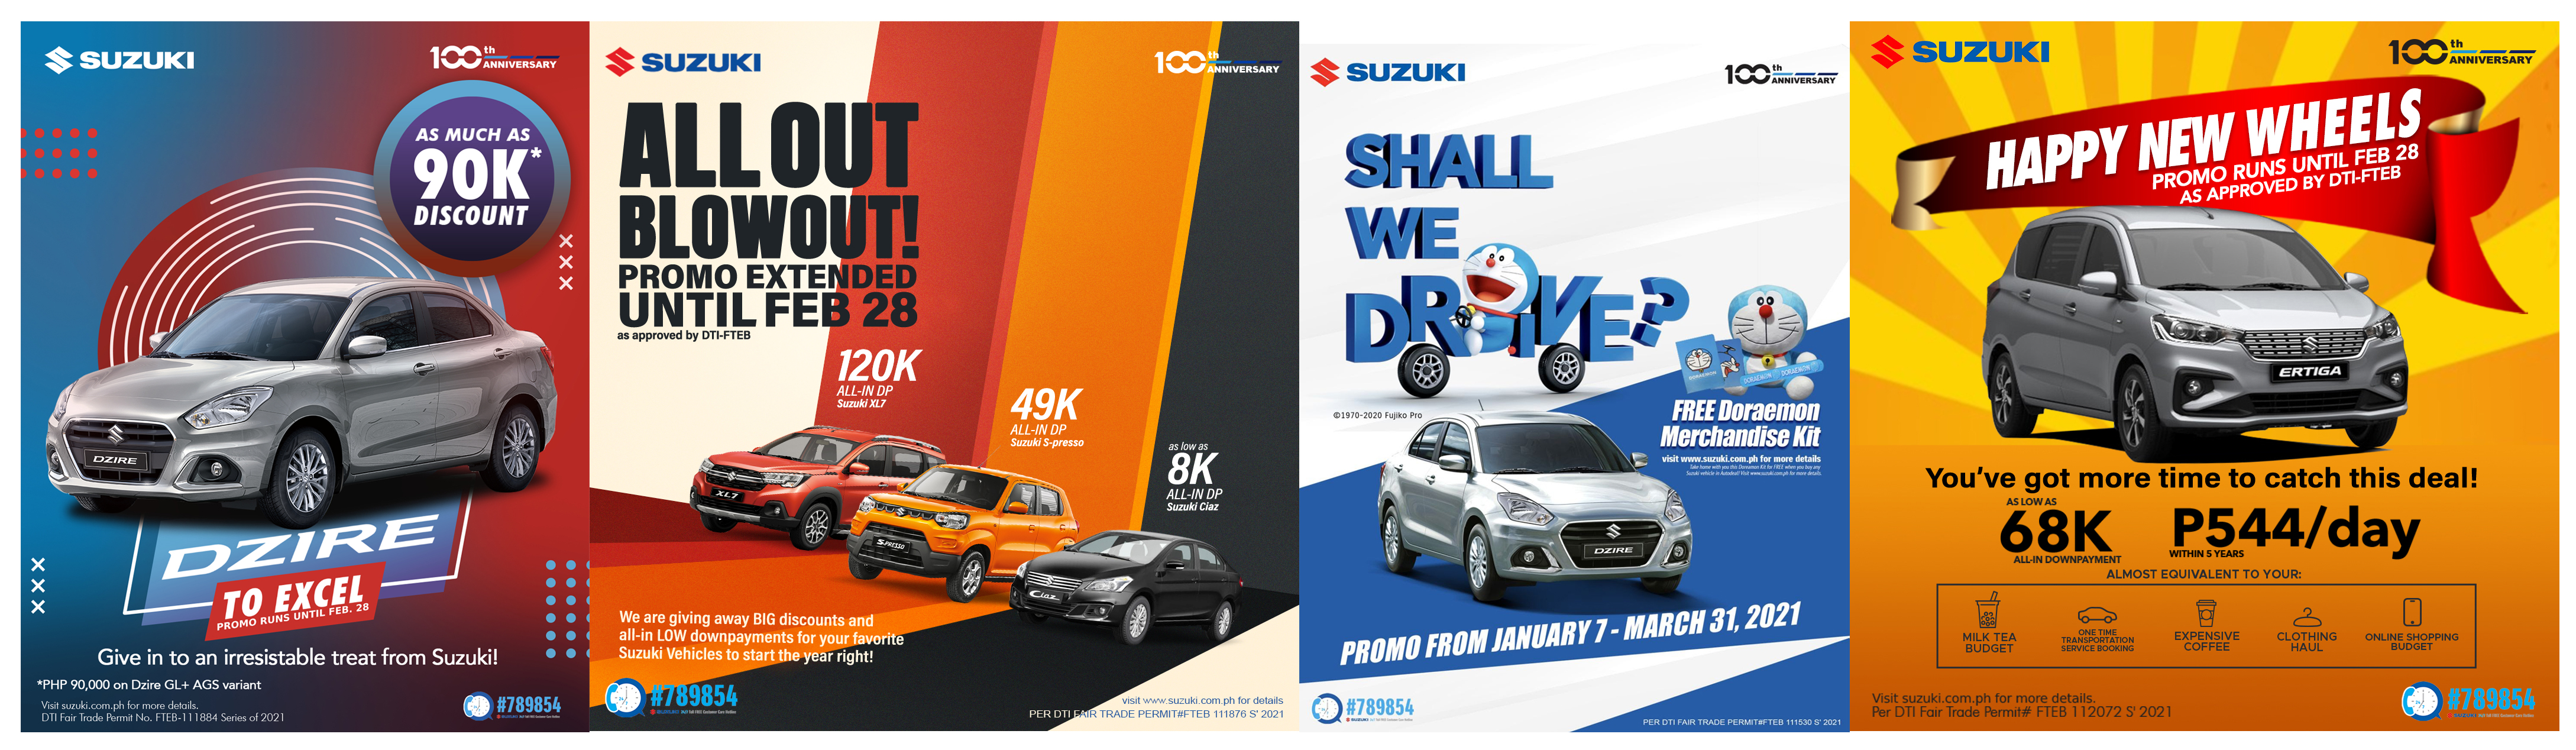 Suzuki Philippines goes All-Out with promos to fuel your Dzire to excel and drive!